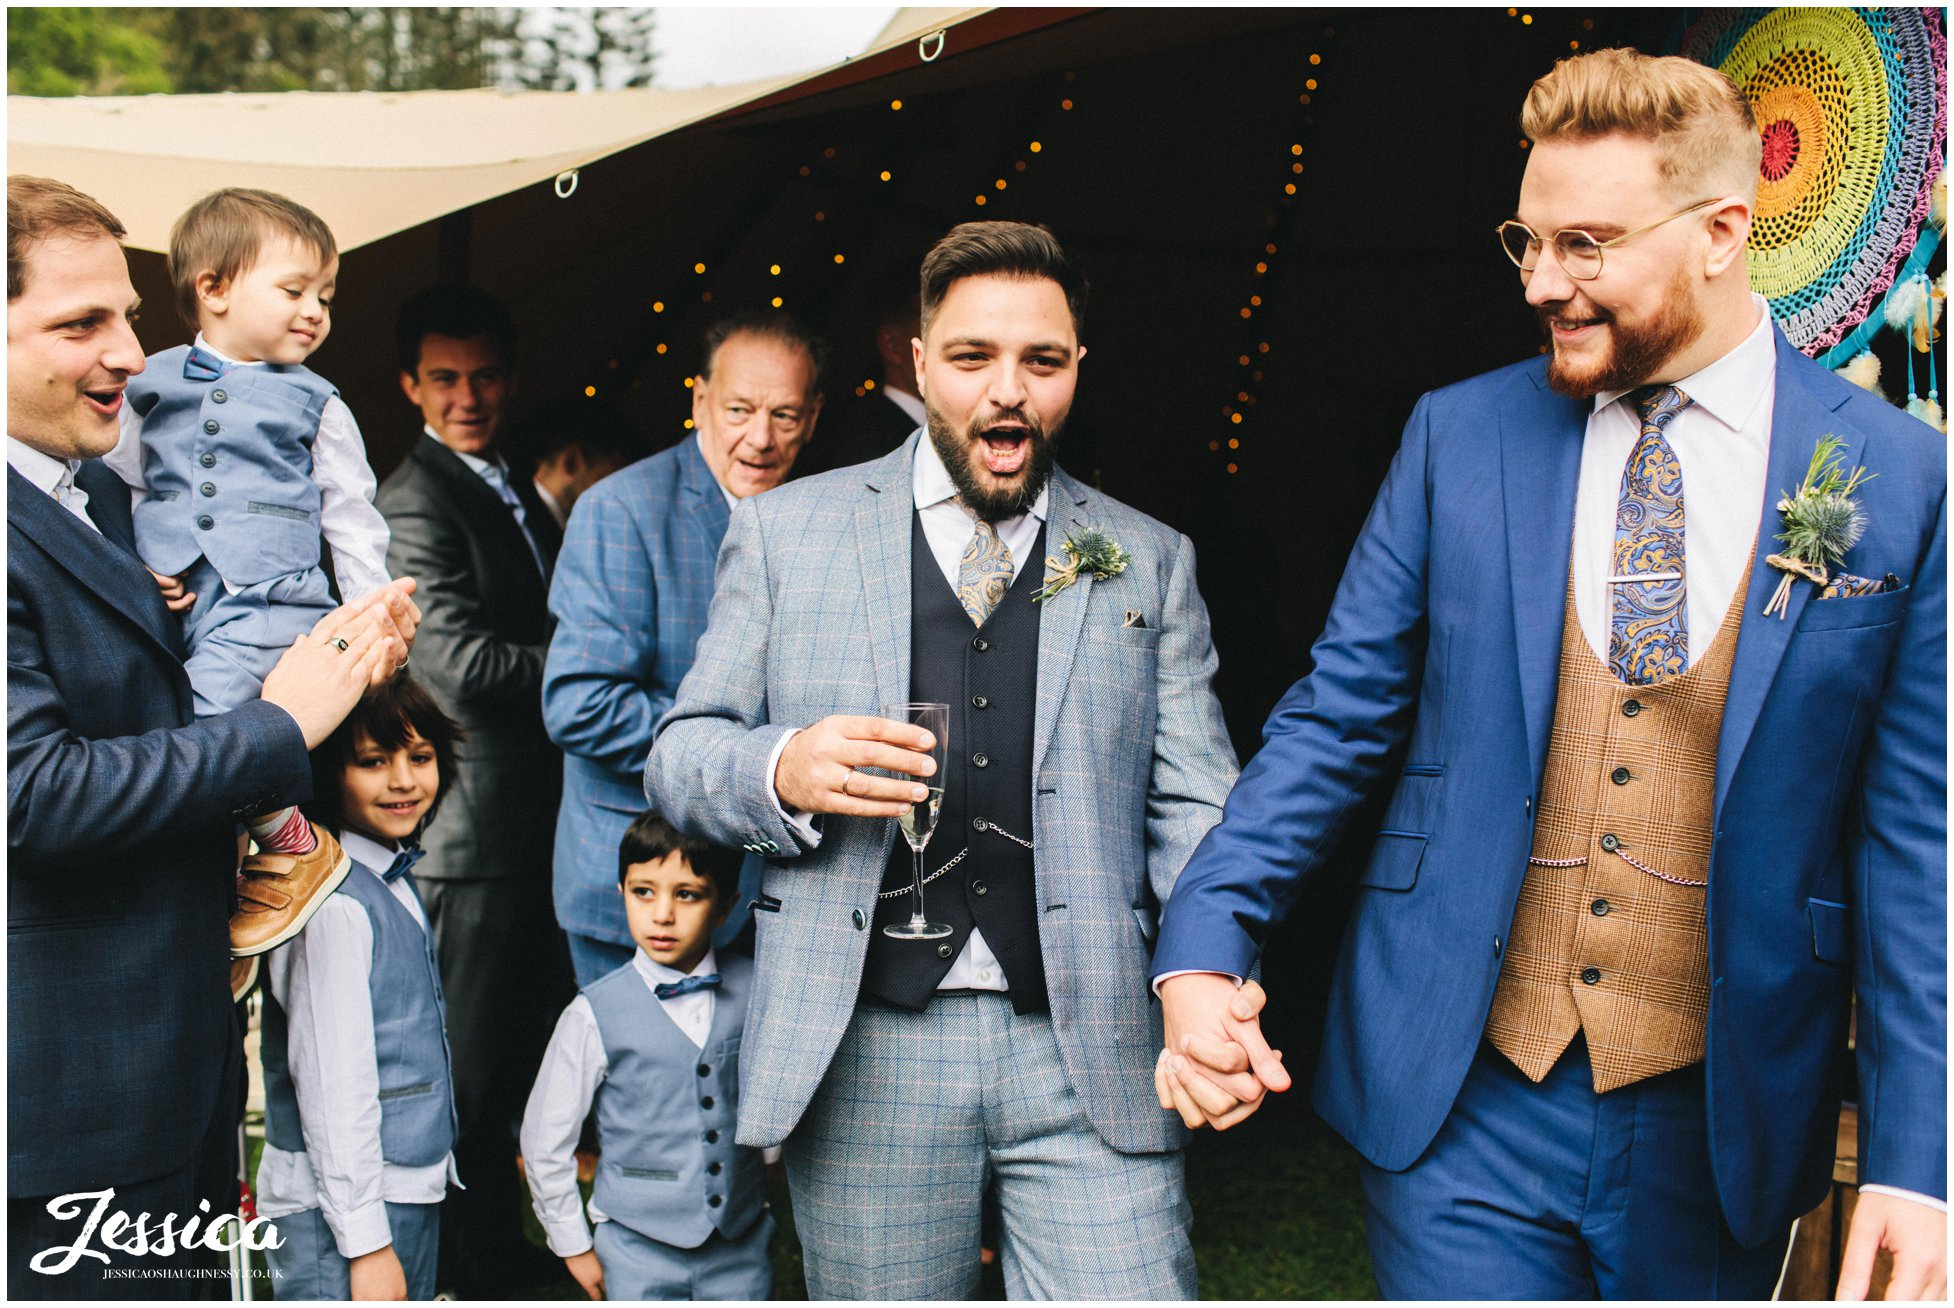 Grooms cheer as they walk down the aisle as a married couple